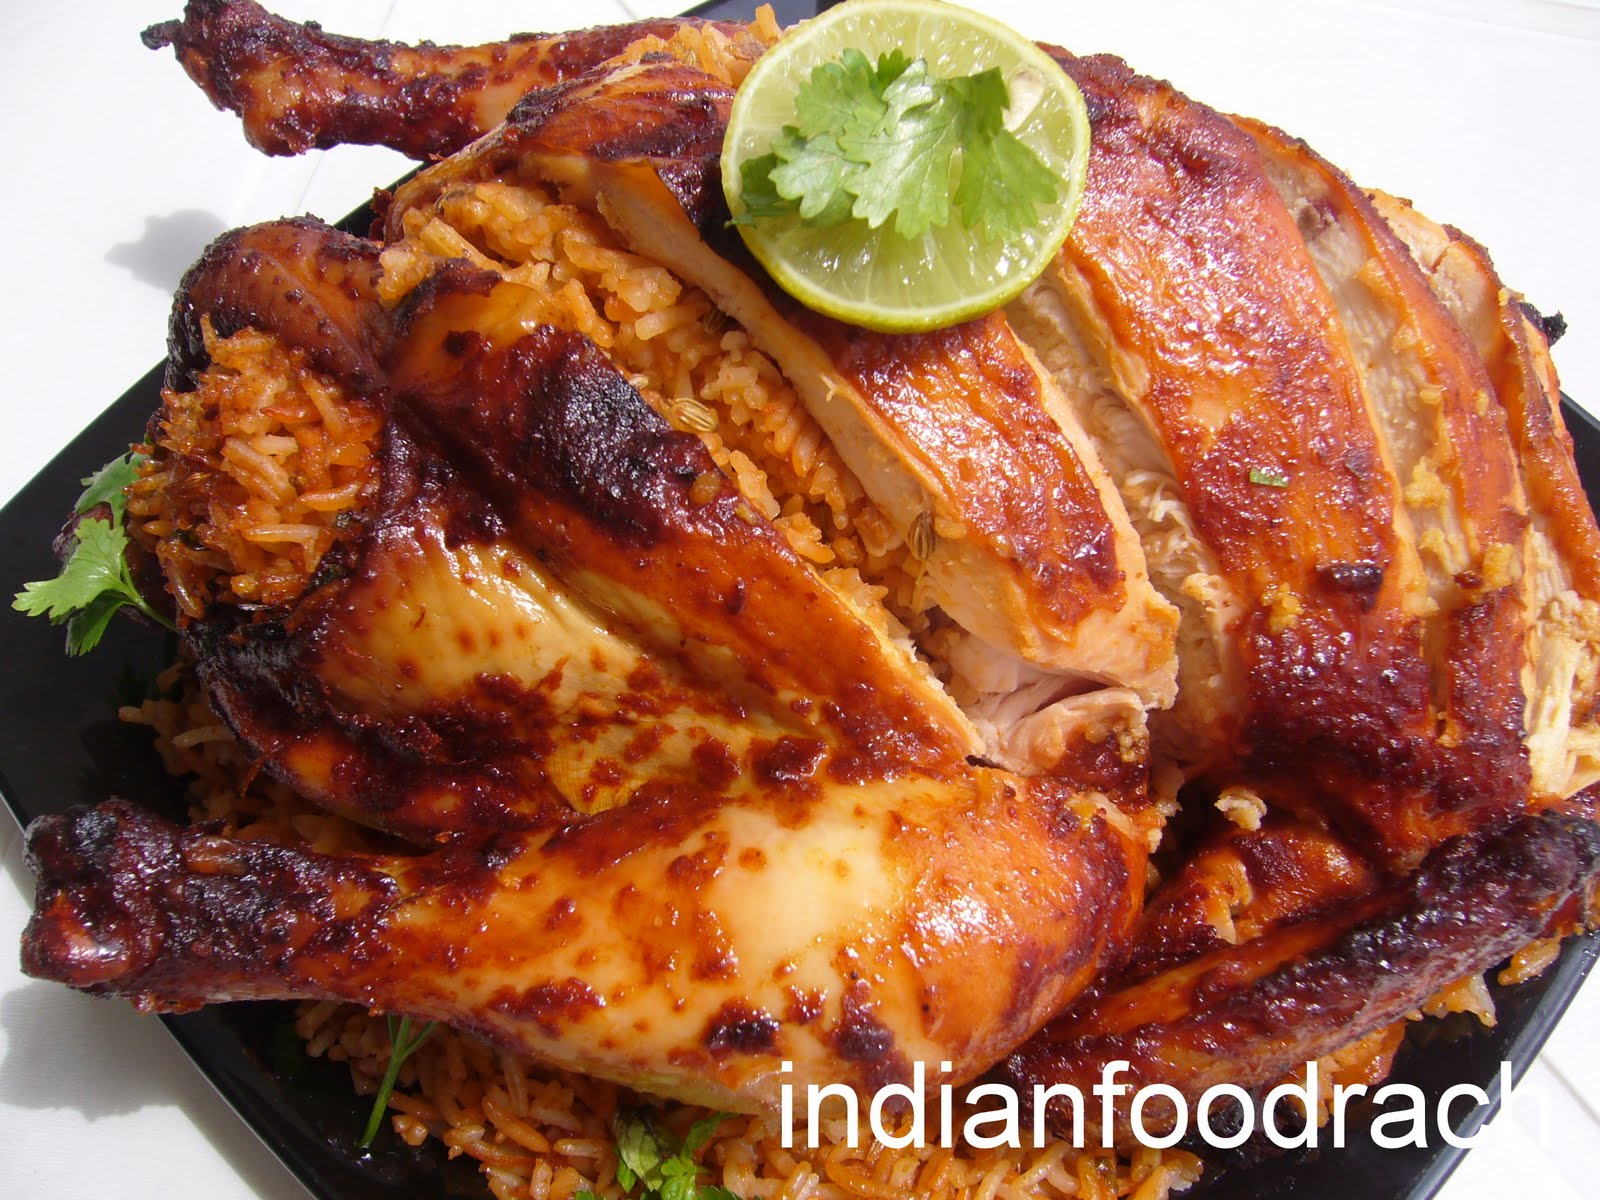 ... FOOD: Roasted chicken stuffed with Khushka/kuska/khusqa (Biryani rice